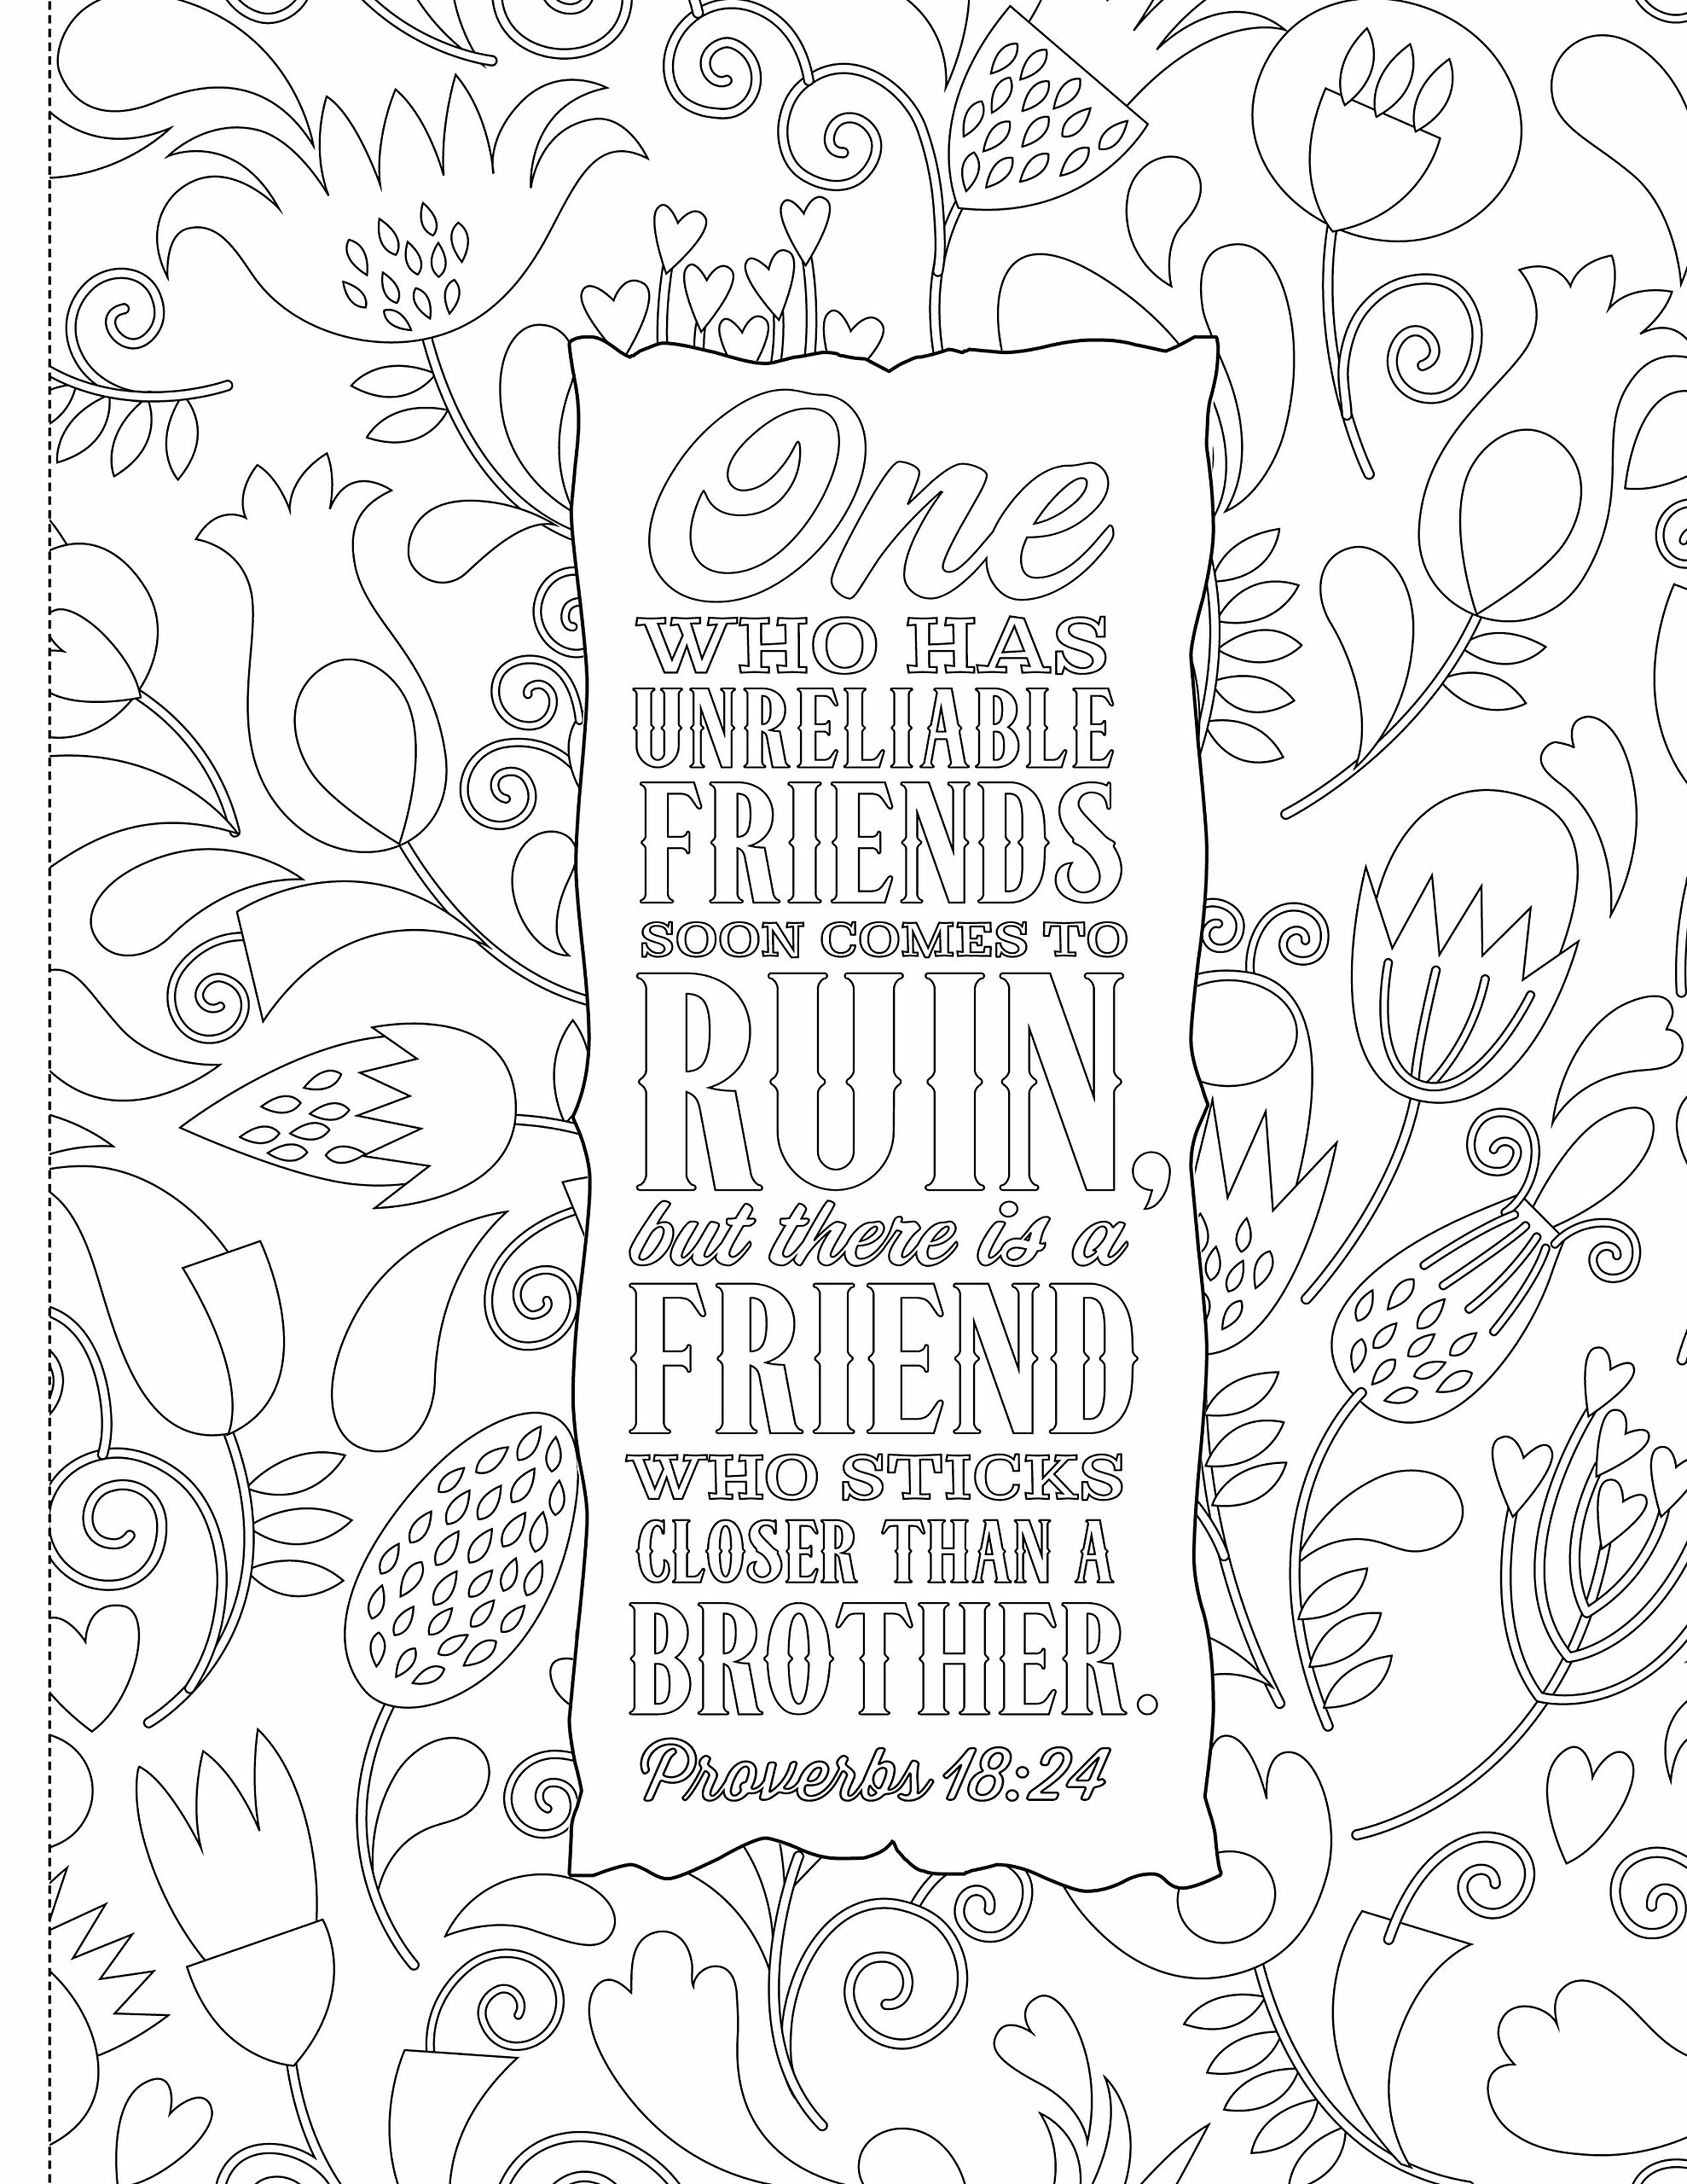 New Christian Inspirational Adult Coloring Pages Gallery Collection Of Printable Puter Coloring Pages Collection